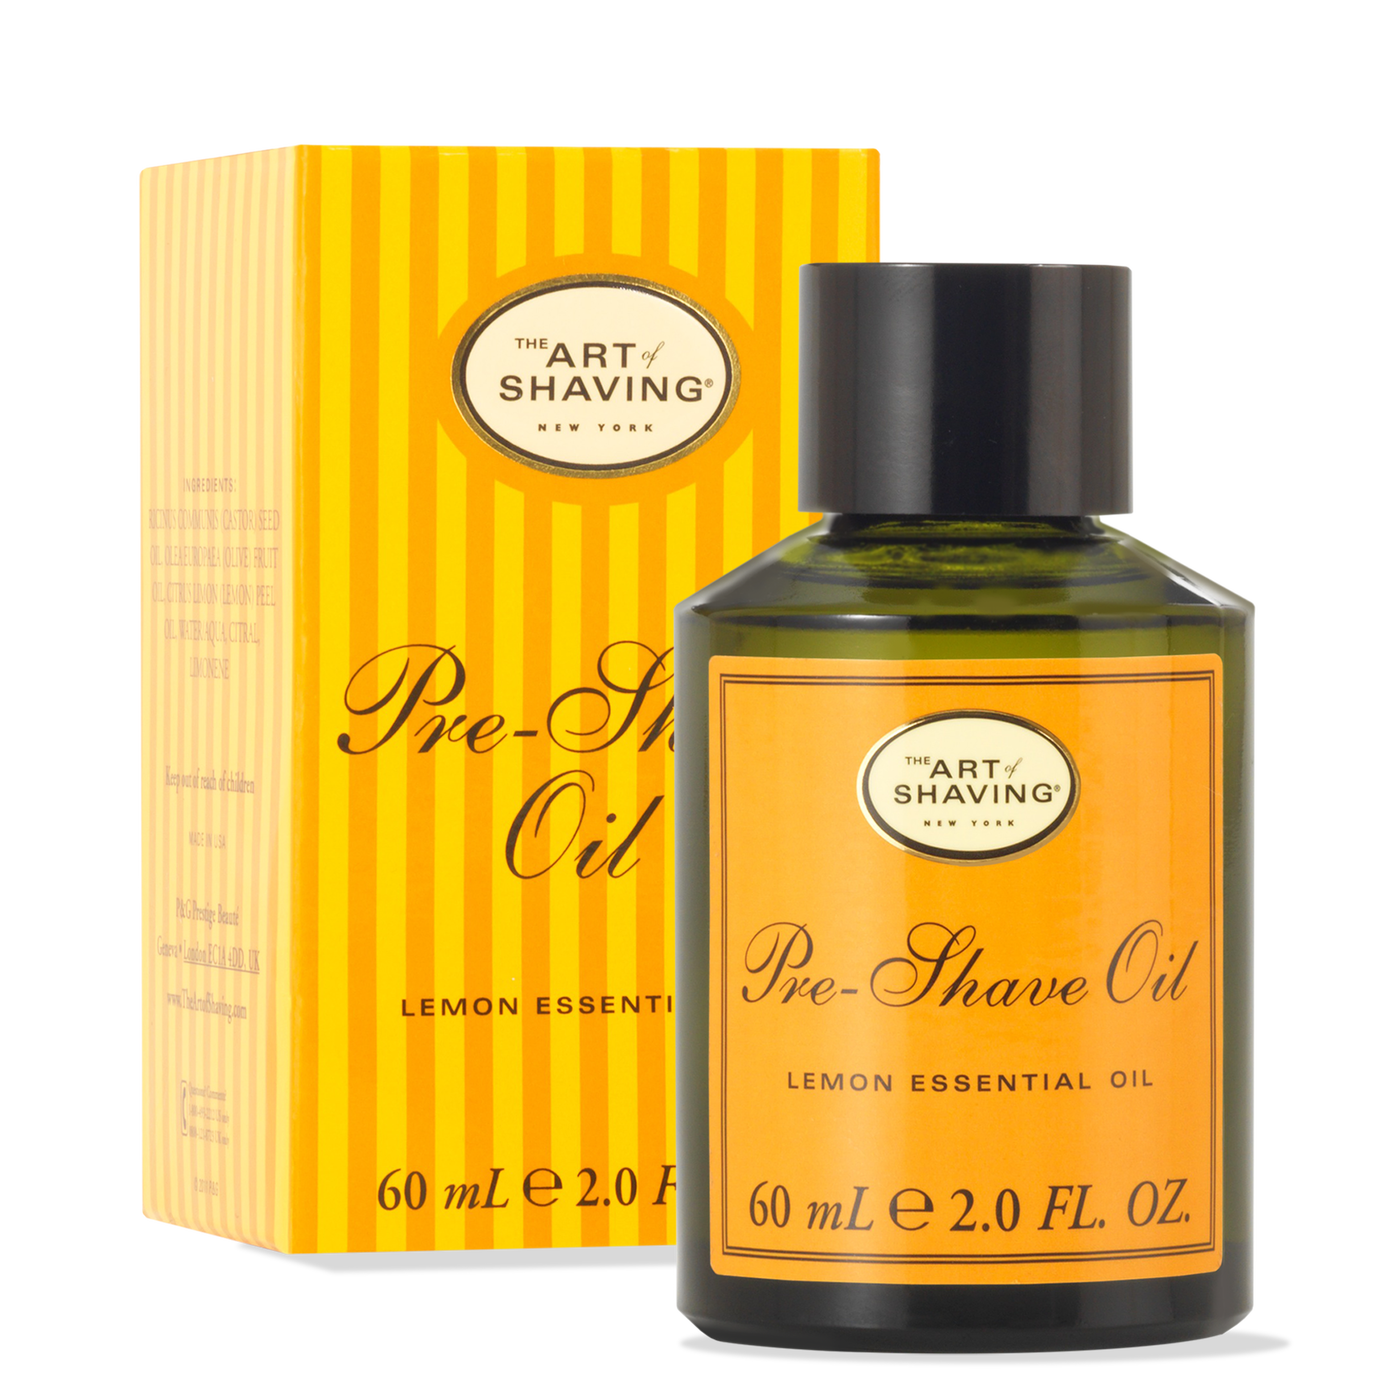 The Art Of Shaving: Pre Shave Oil - Lemon